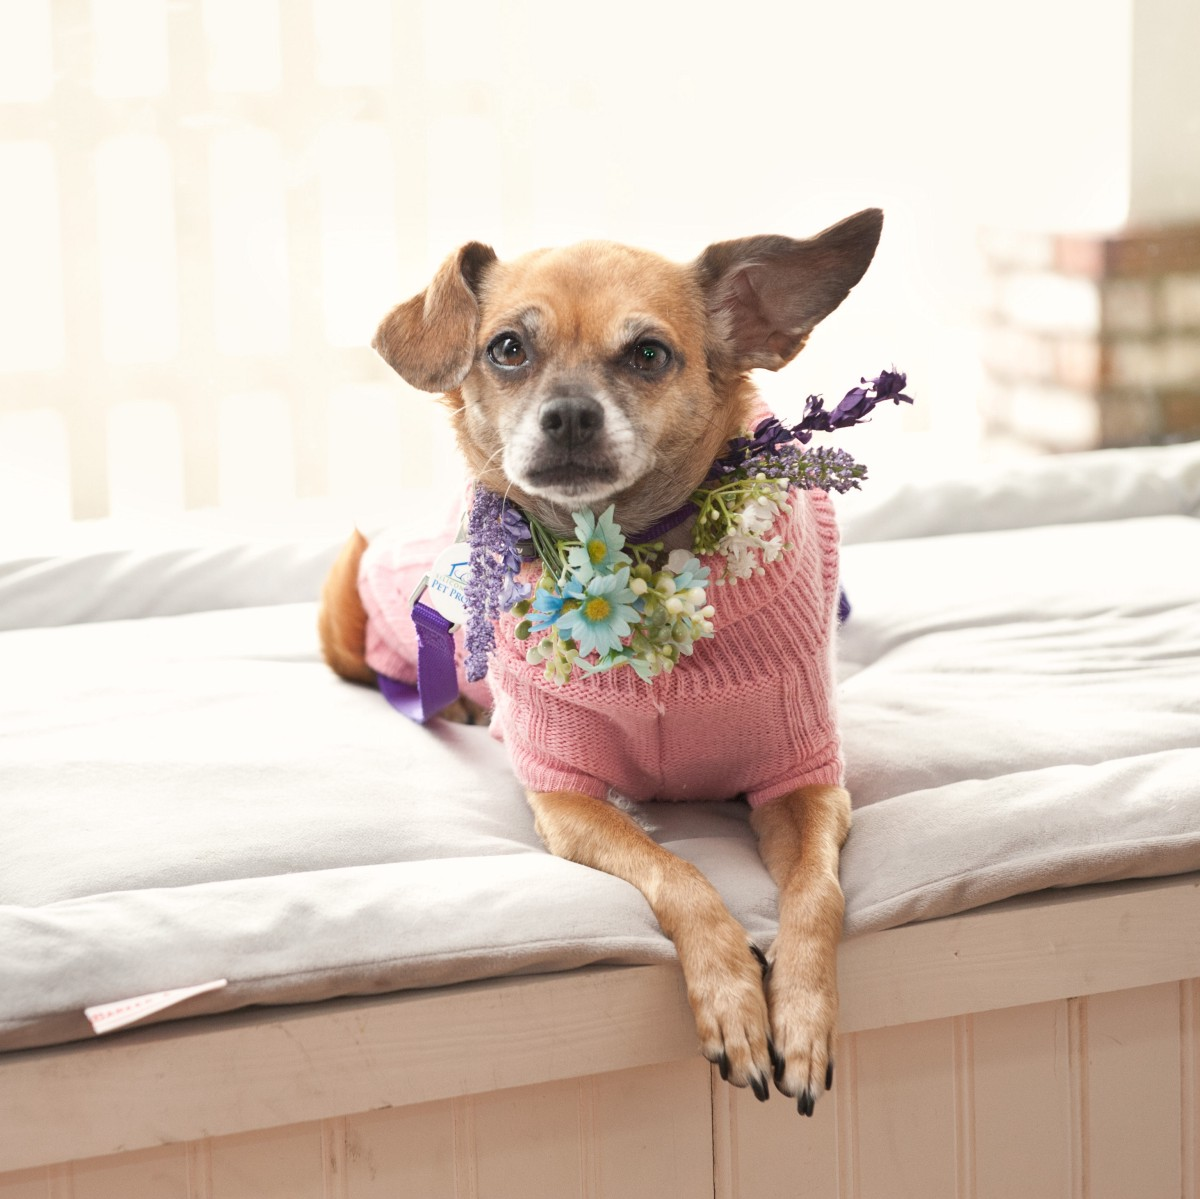 Why Are Chihuahuas Filling Up Bay Area Shelters?